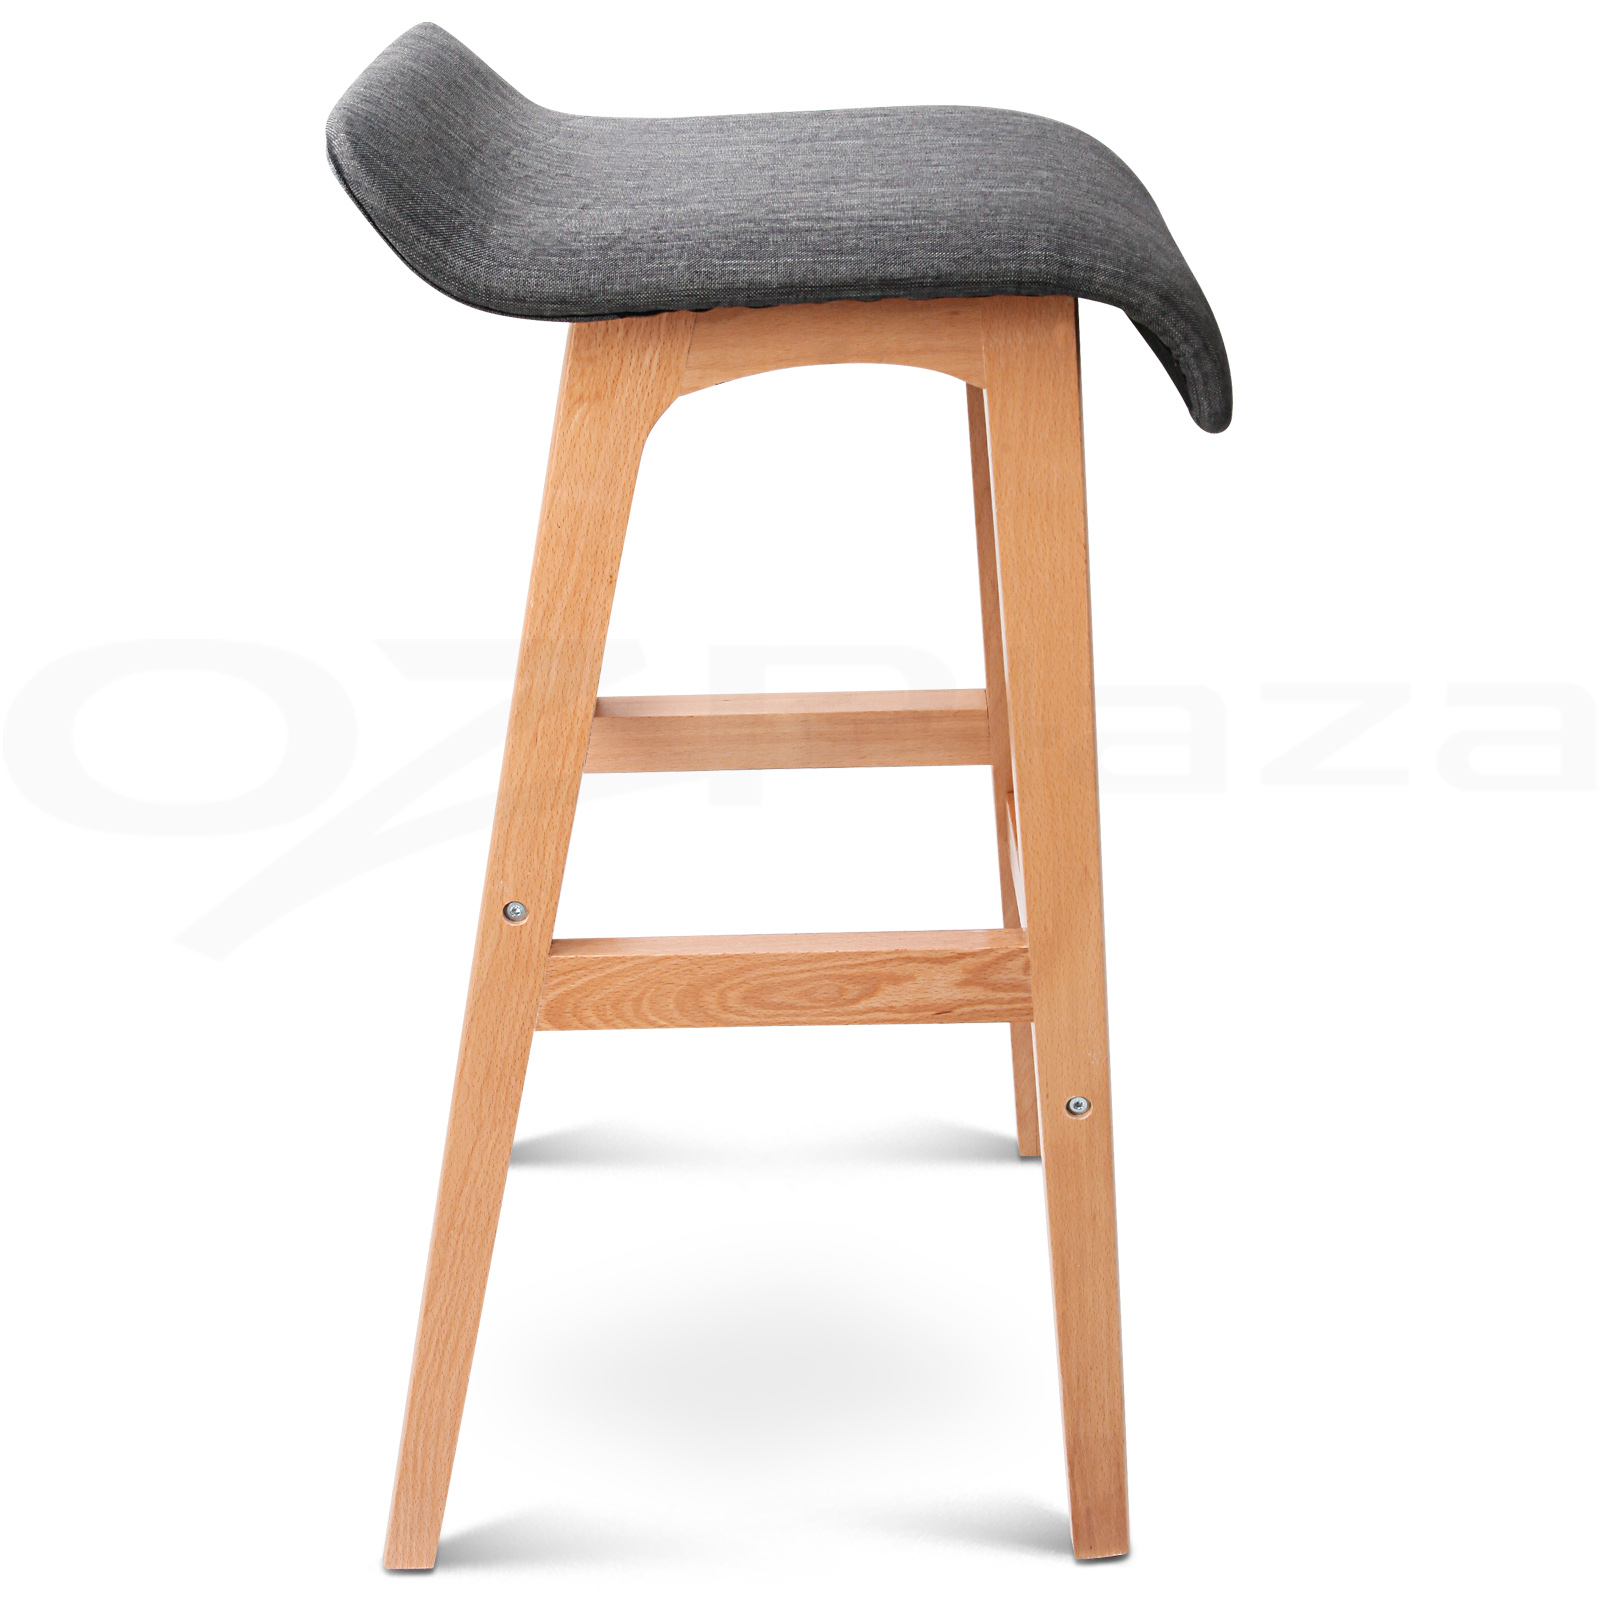 4x Wooden Bar Stools Kitchen Barstool Fabric Foam Seat Dining Chair Black 156